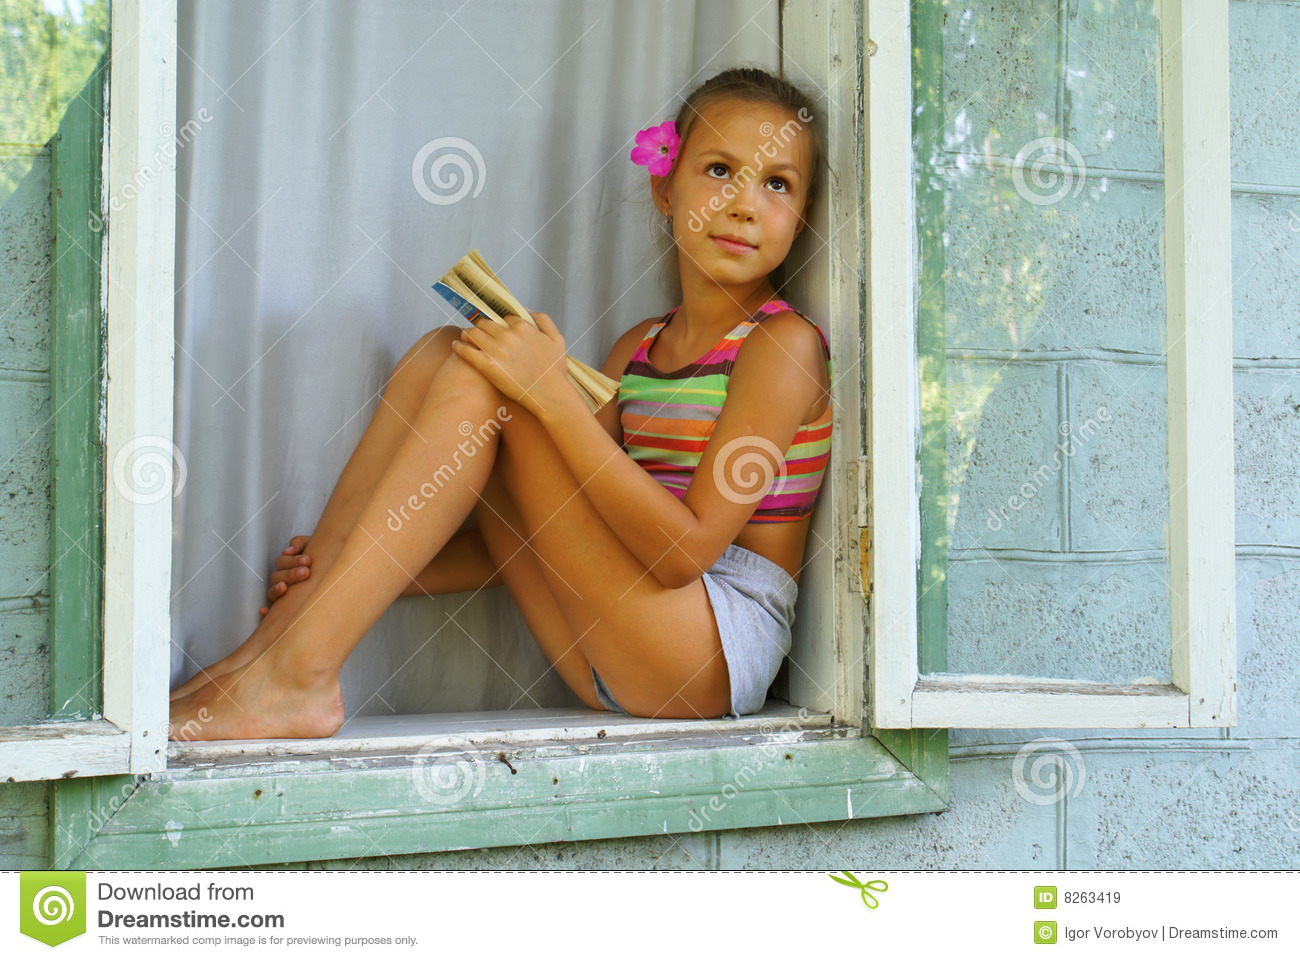 Royalty Free Stock Images: Preteen girl with book